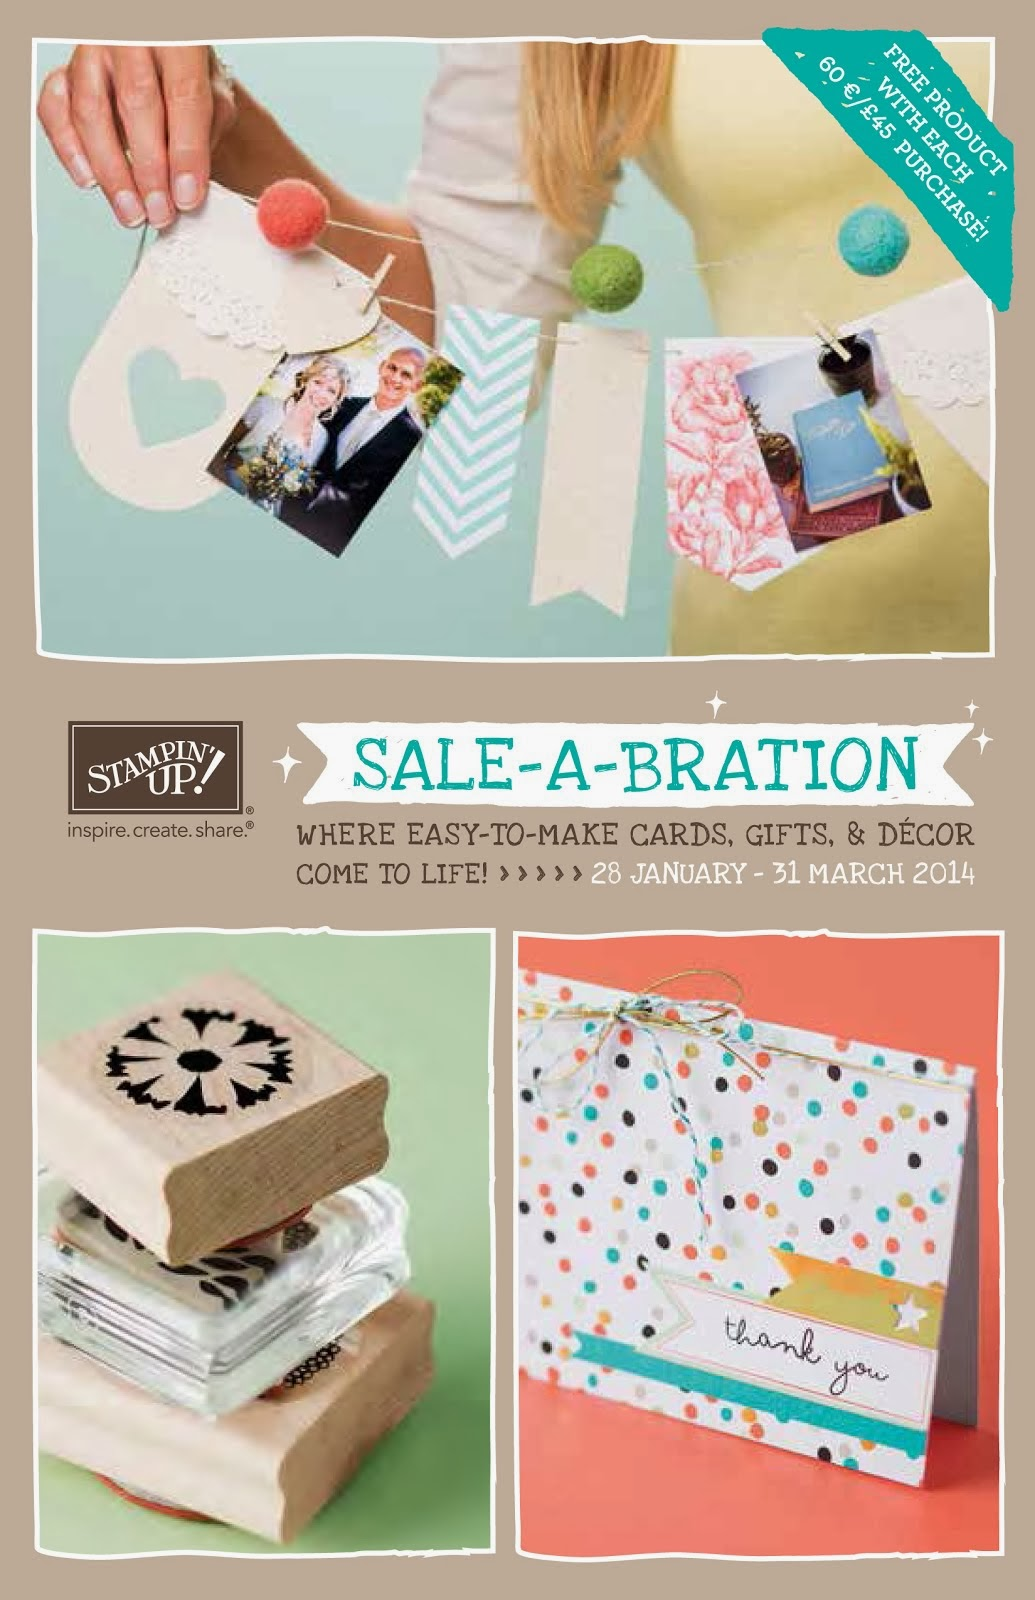 Sale-A-Bration 2014 is HERE!